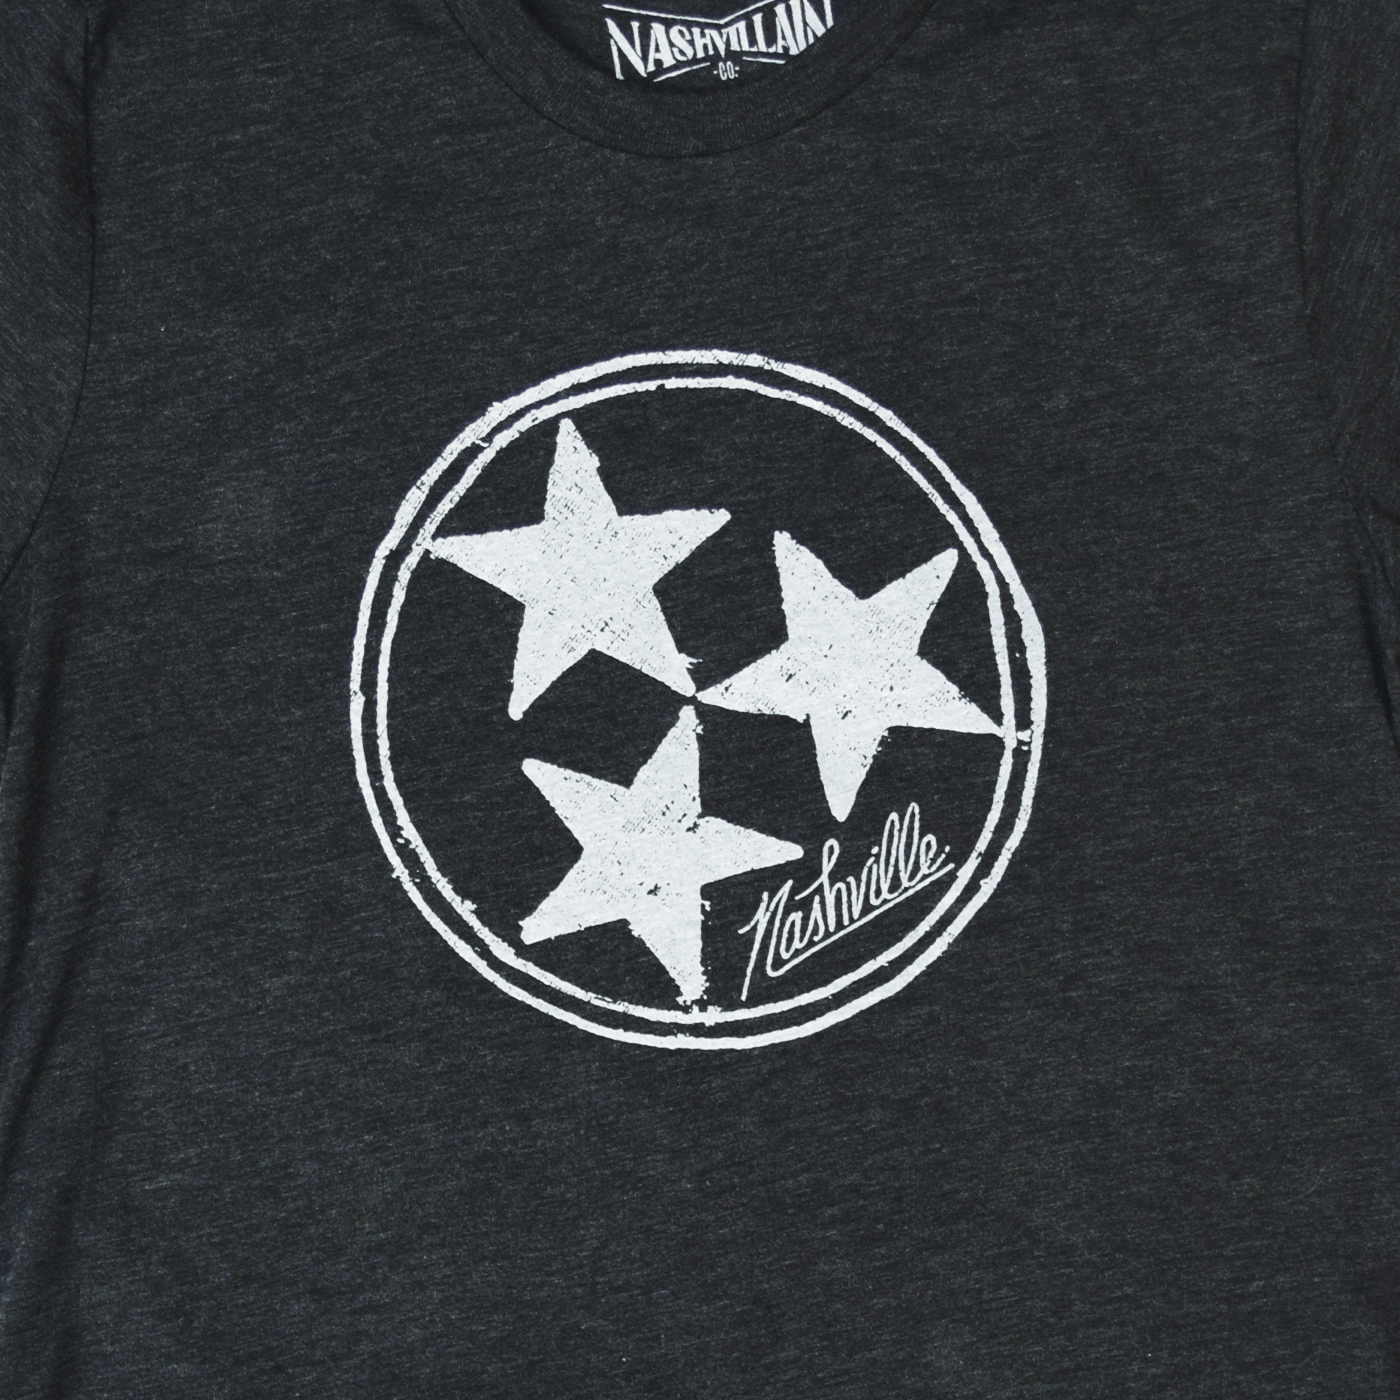 Inverse Tennesse Tristar Shirt design for a black unisex tee